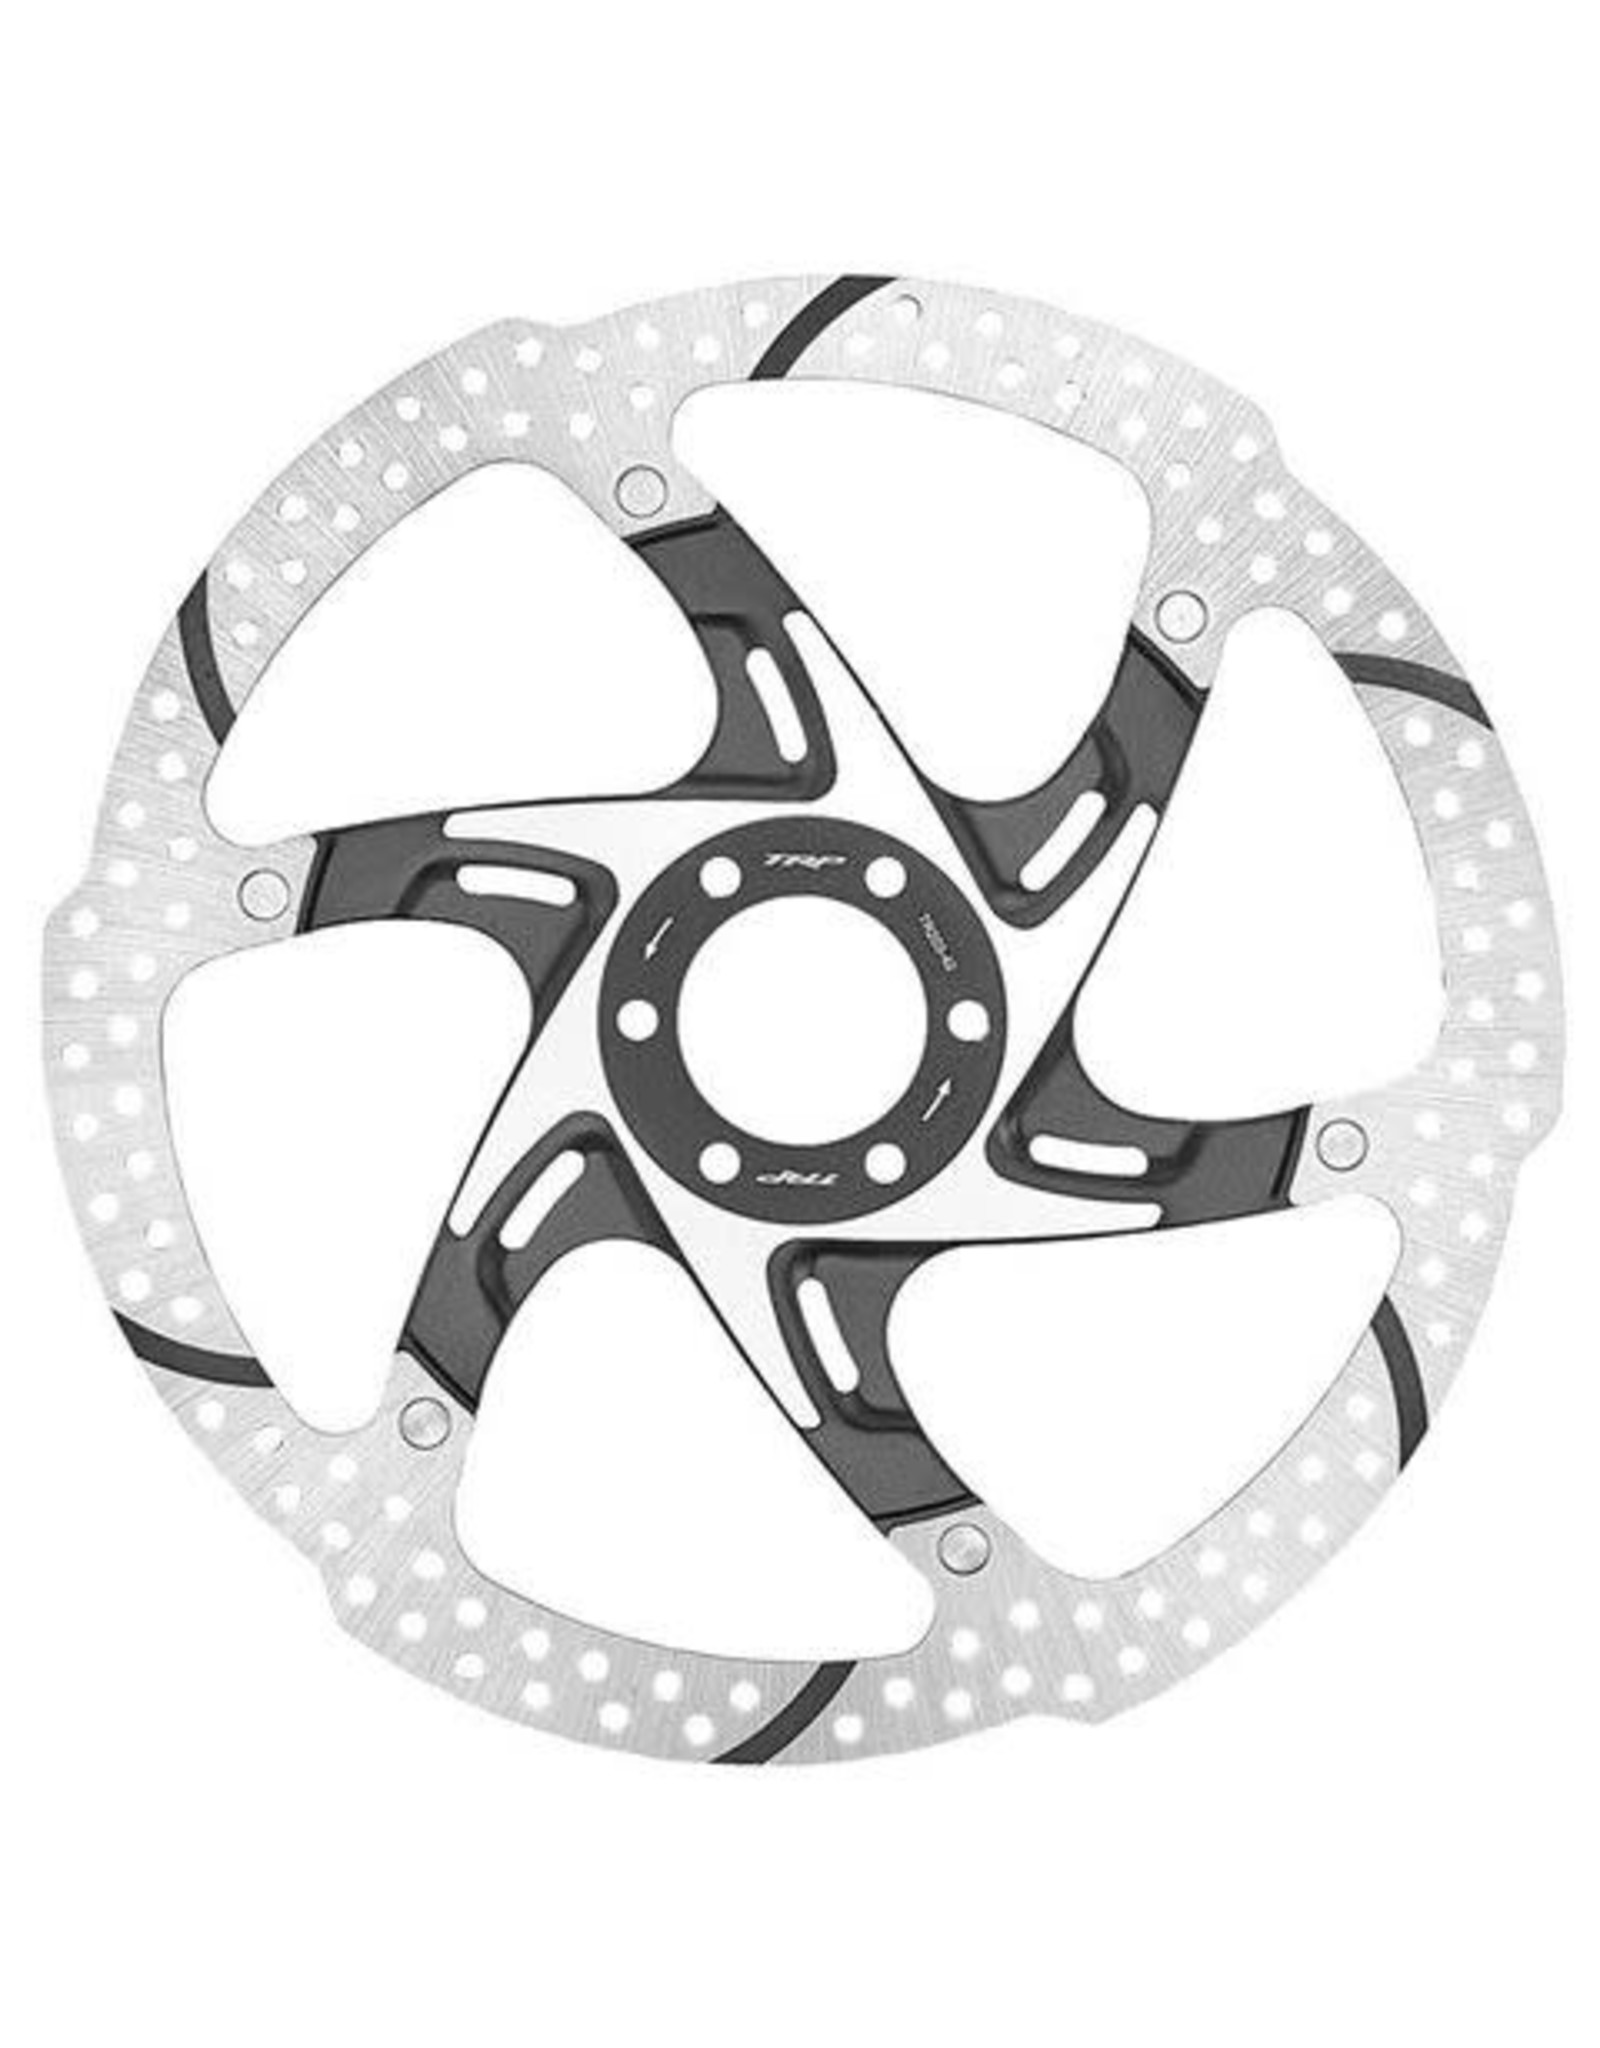 TRP TRP-42 2.3MM 2 PIECE 203MM 6 BOLT STAINLESS STEEL BRAKE ROTOR